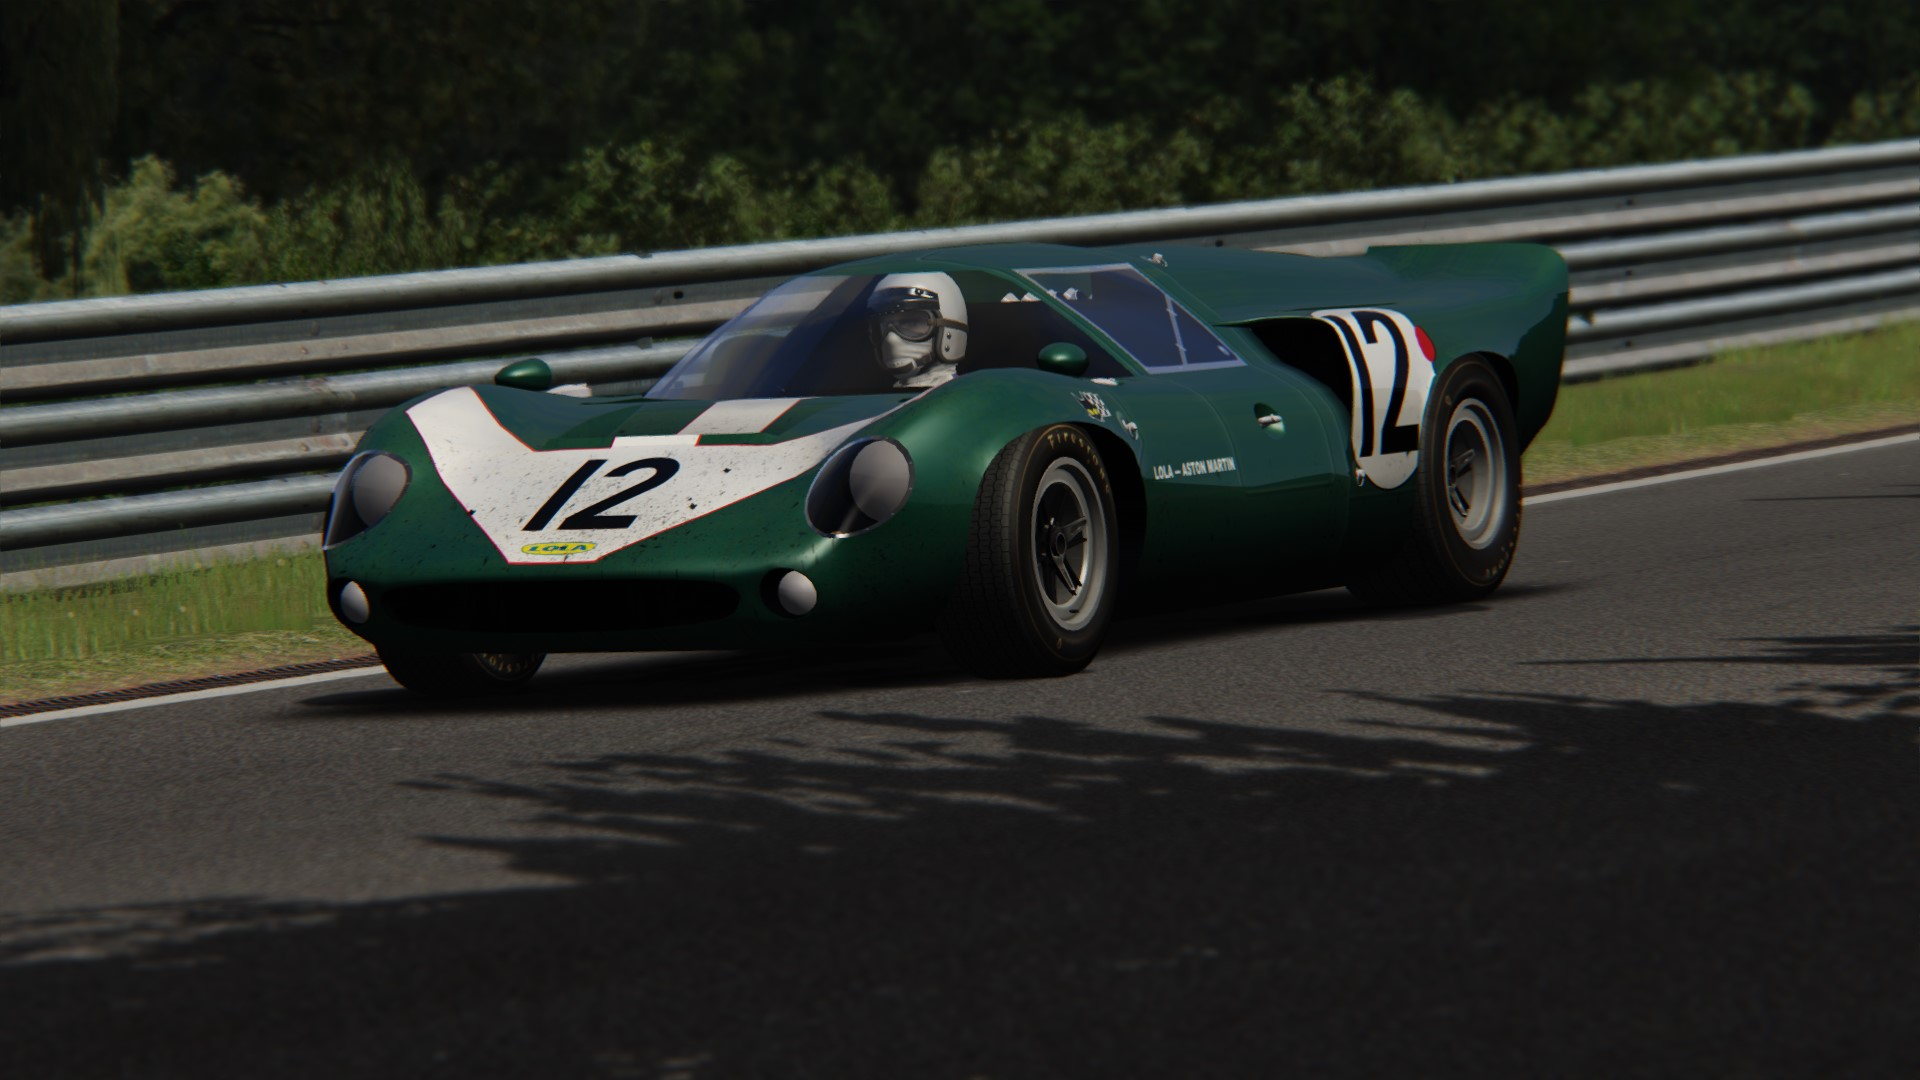 [NEWS] Le Mans Classics (not only GTL) - Page 30 Screen15